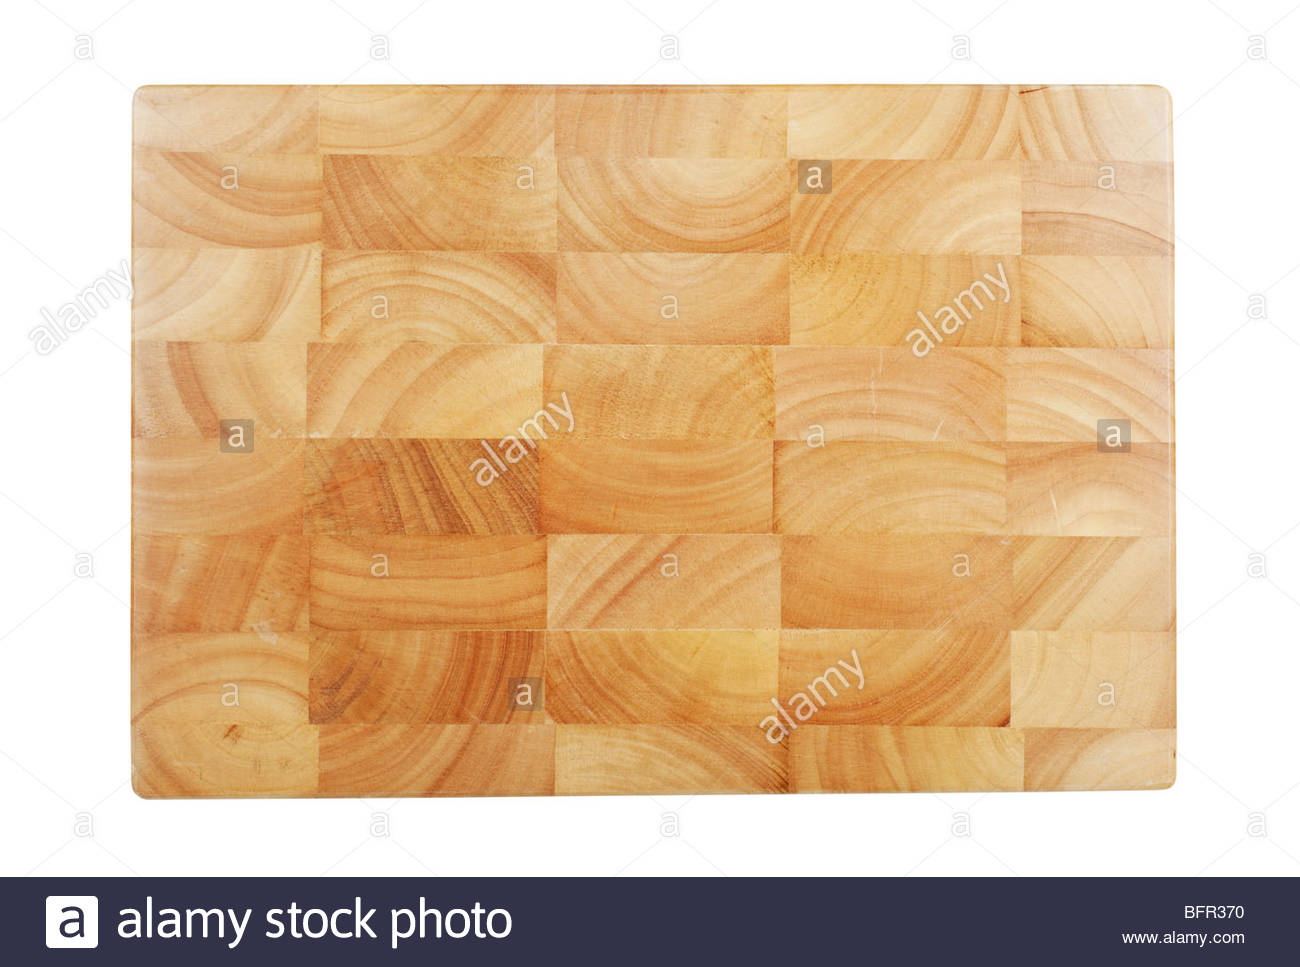 Wooden chopping board isolated on white. - Stock Image